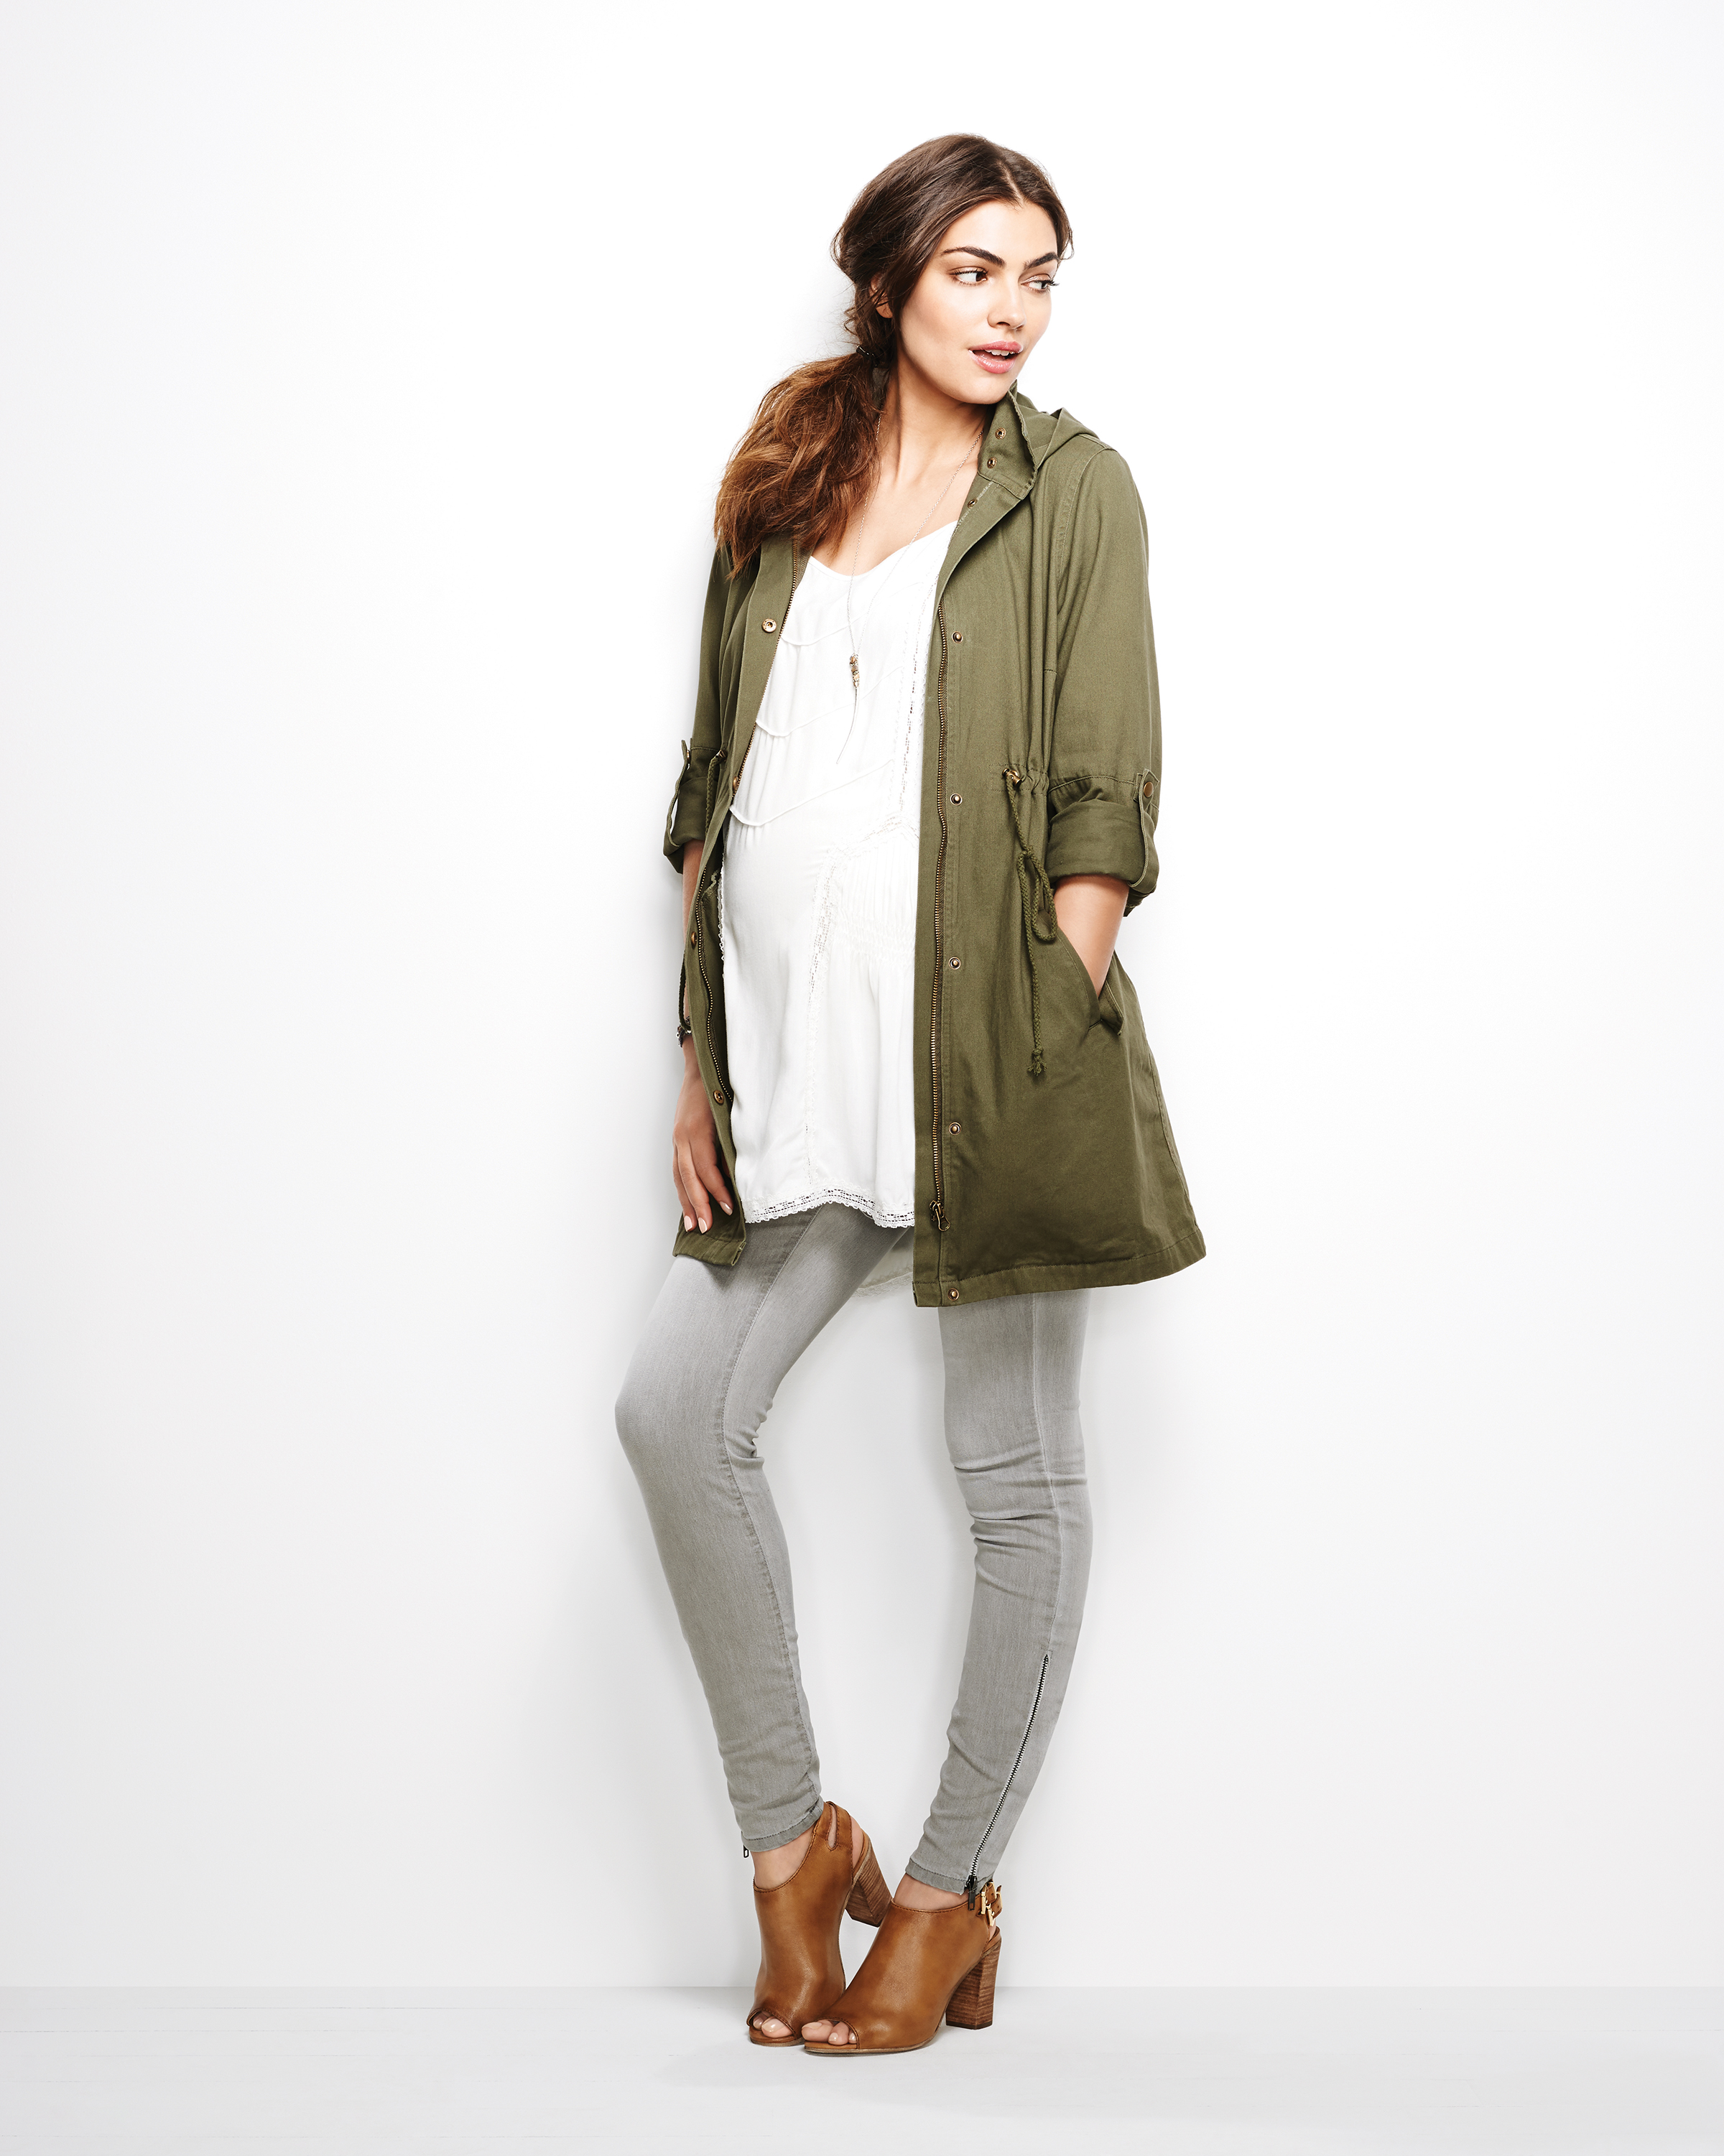 Maternity Clothes For Fall